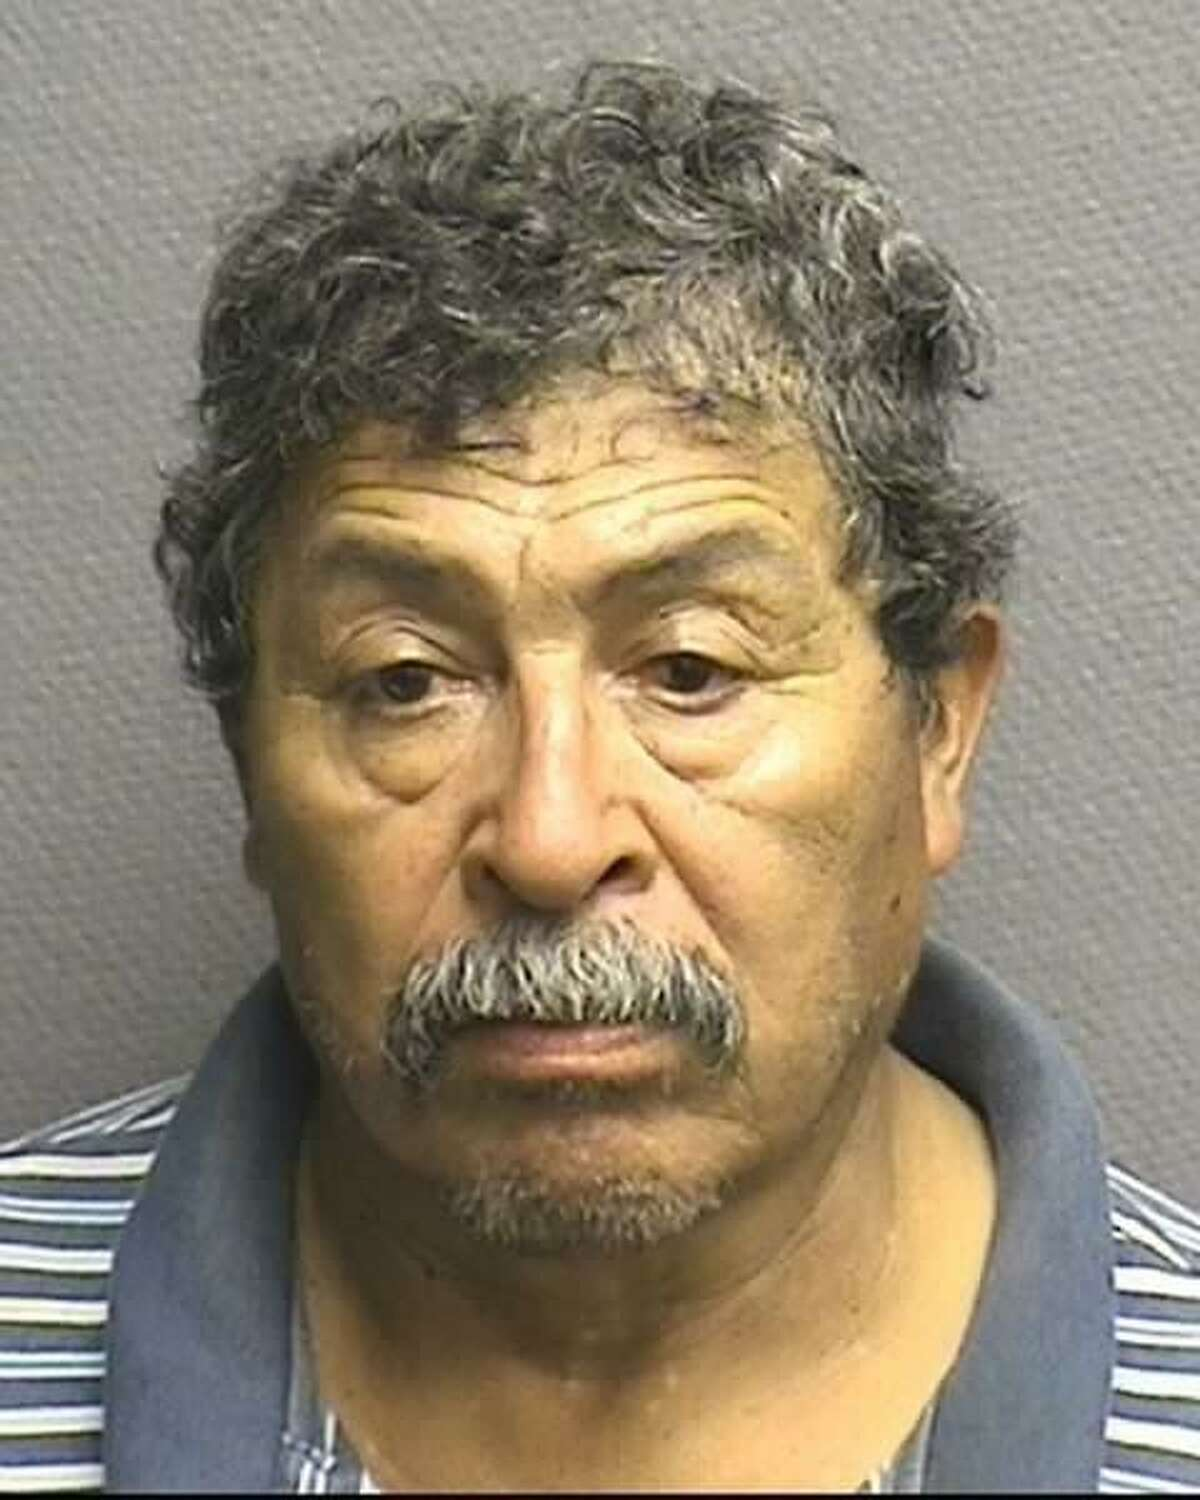 Francisco Amaya, is wanted by Houston Crime Stoppers on a charge of, DWI 3rd offense.